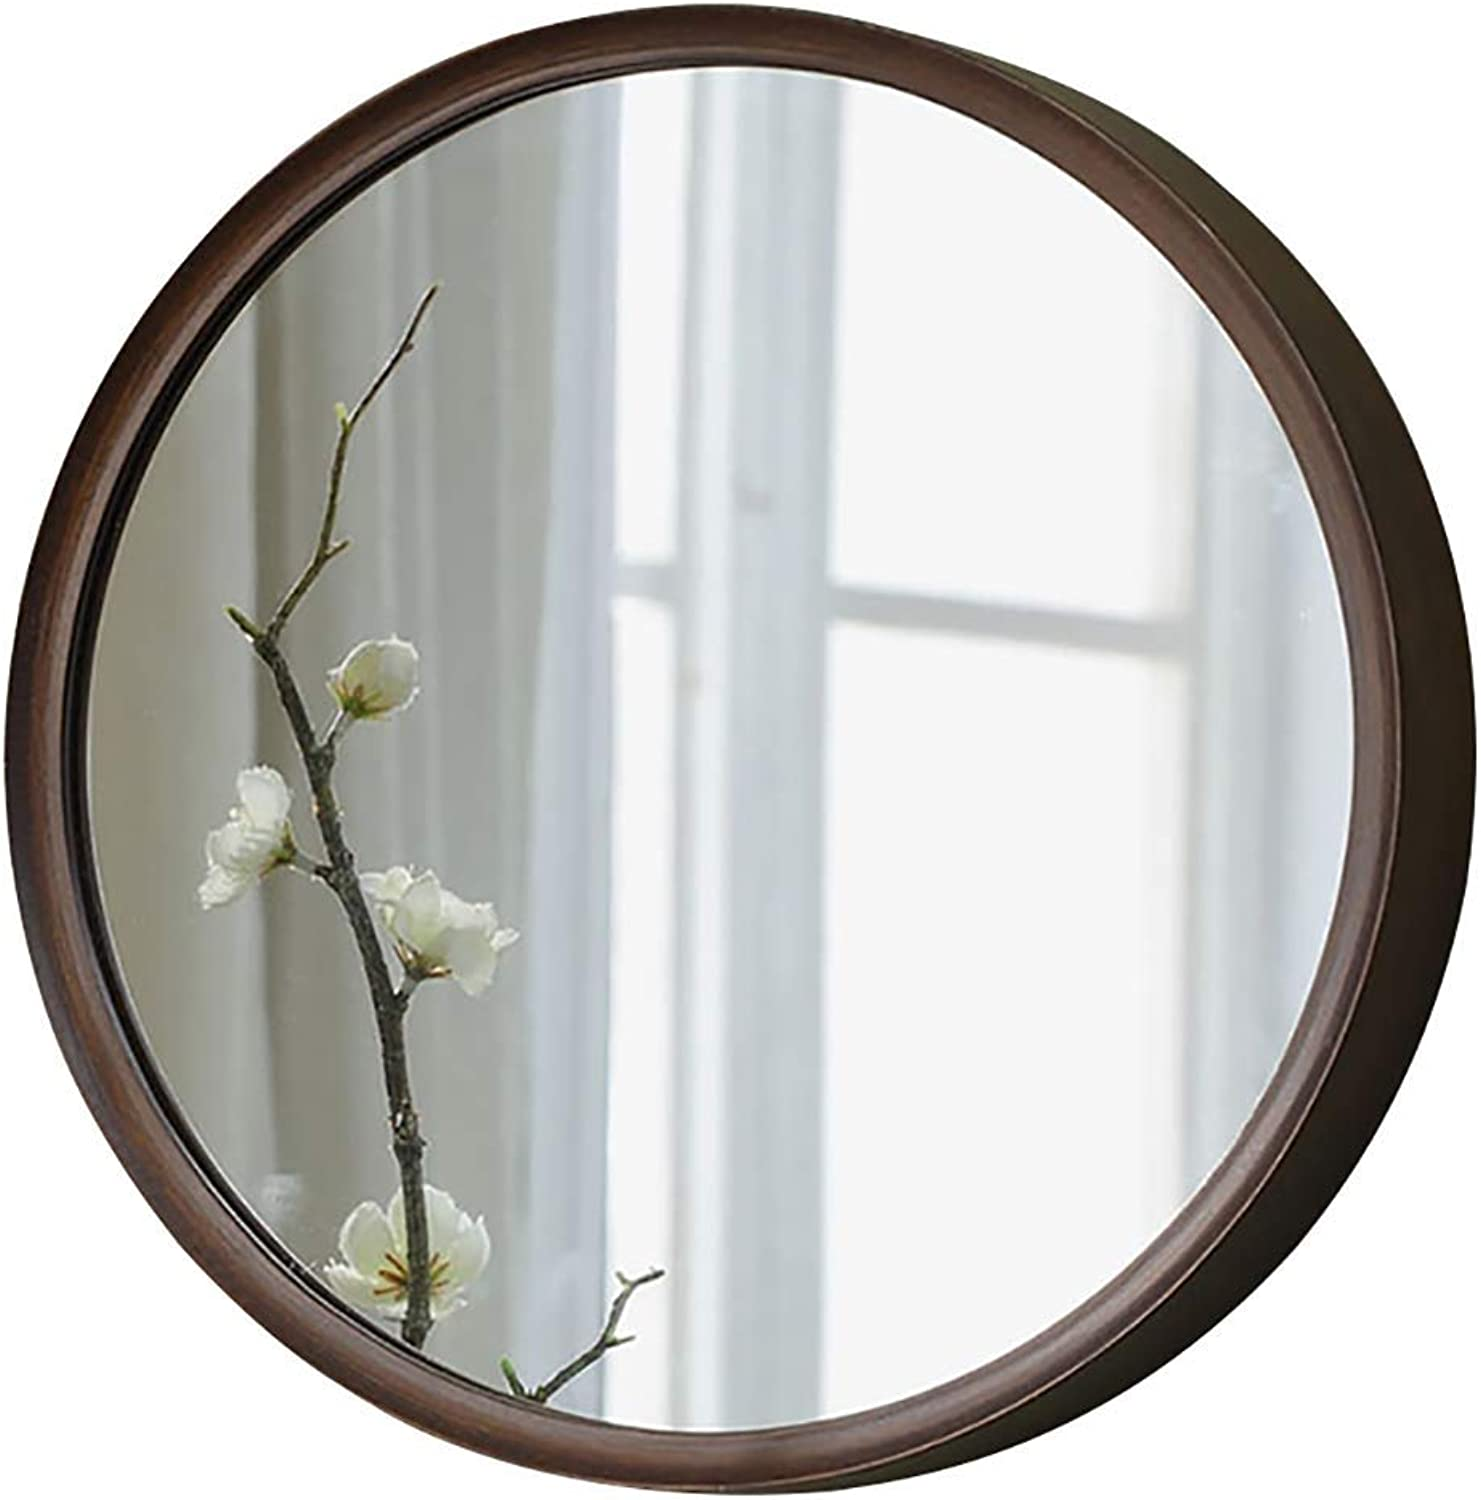 SDK Round Combination wall mirror Bathroom Mirror with Wooden Mirror Frame   Premium Silver Backed Glass Panel Vanity, Bedroom or Bathroom Decoration (Size   28cm)